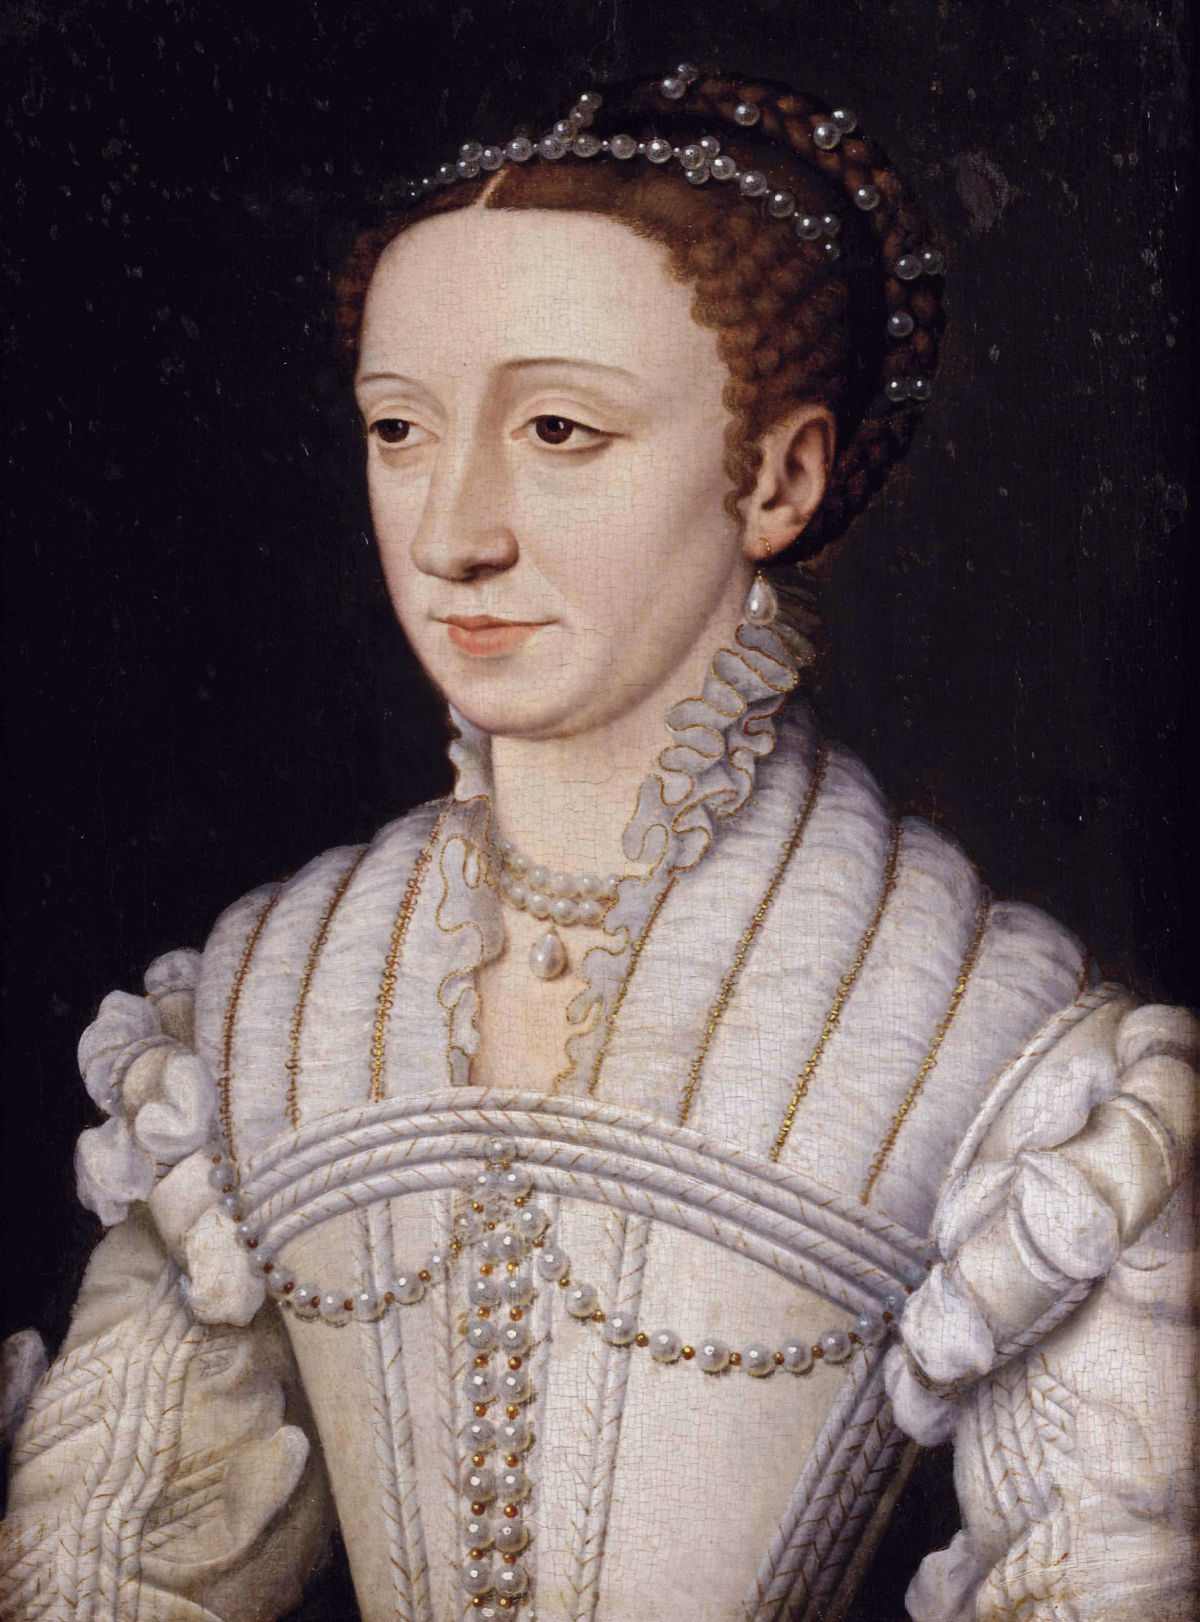 1200px-Margaret_of_France_Duchess_of_Berry_by_Studio_of_François_Clouet.jpg